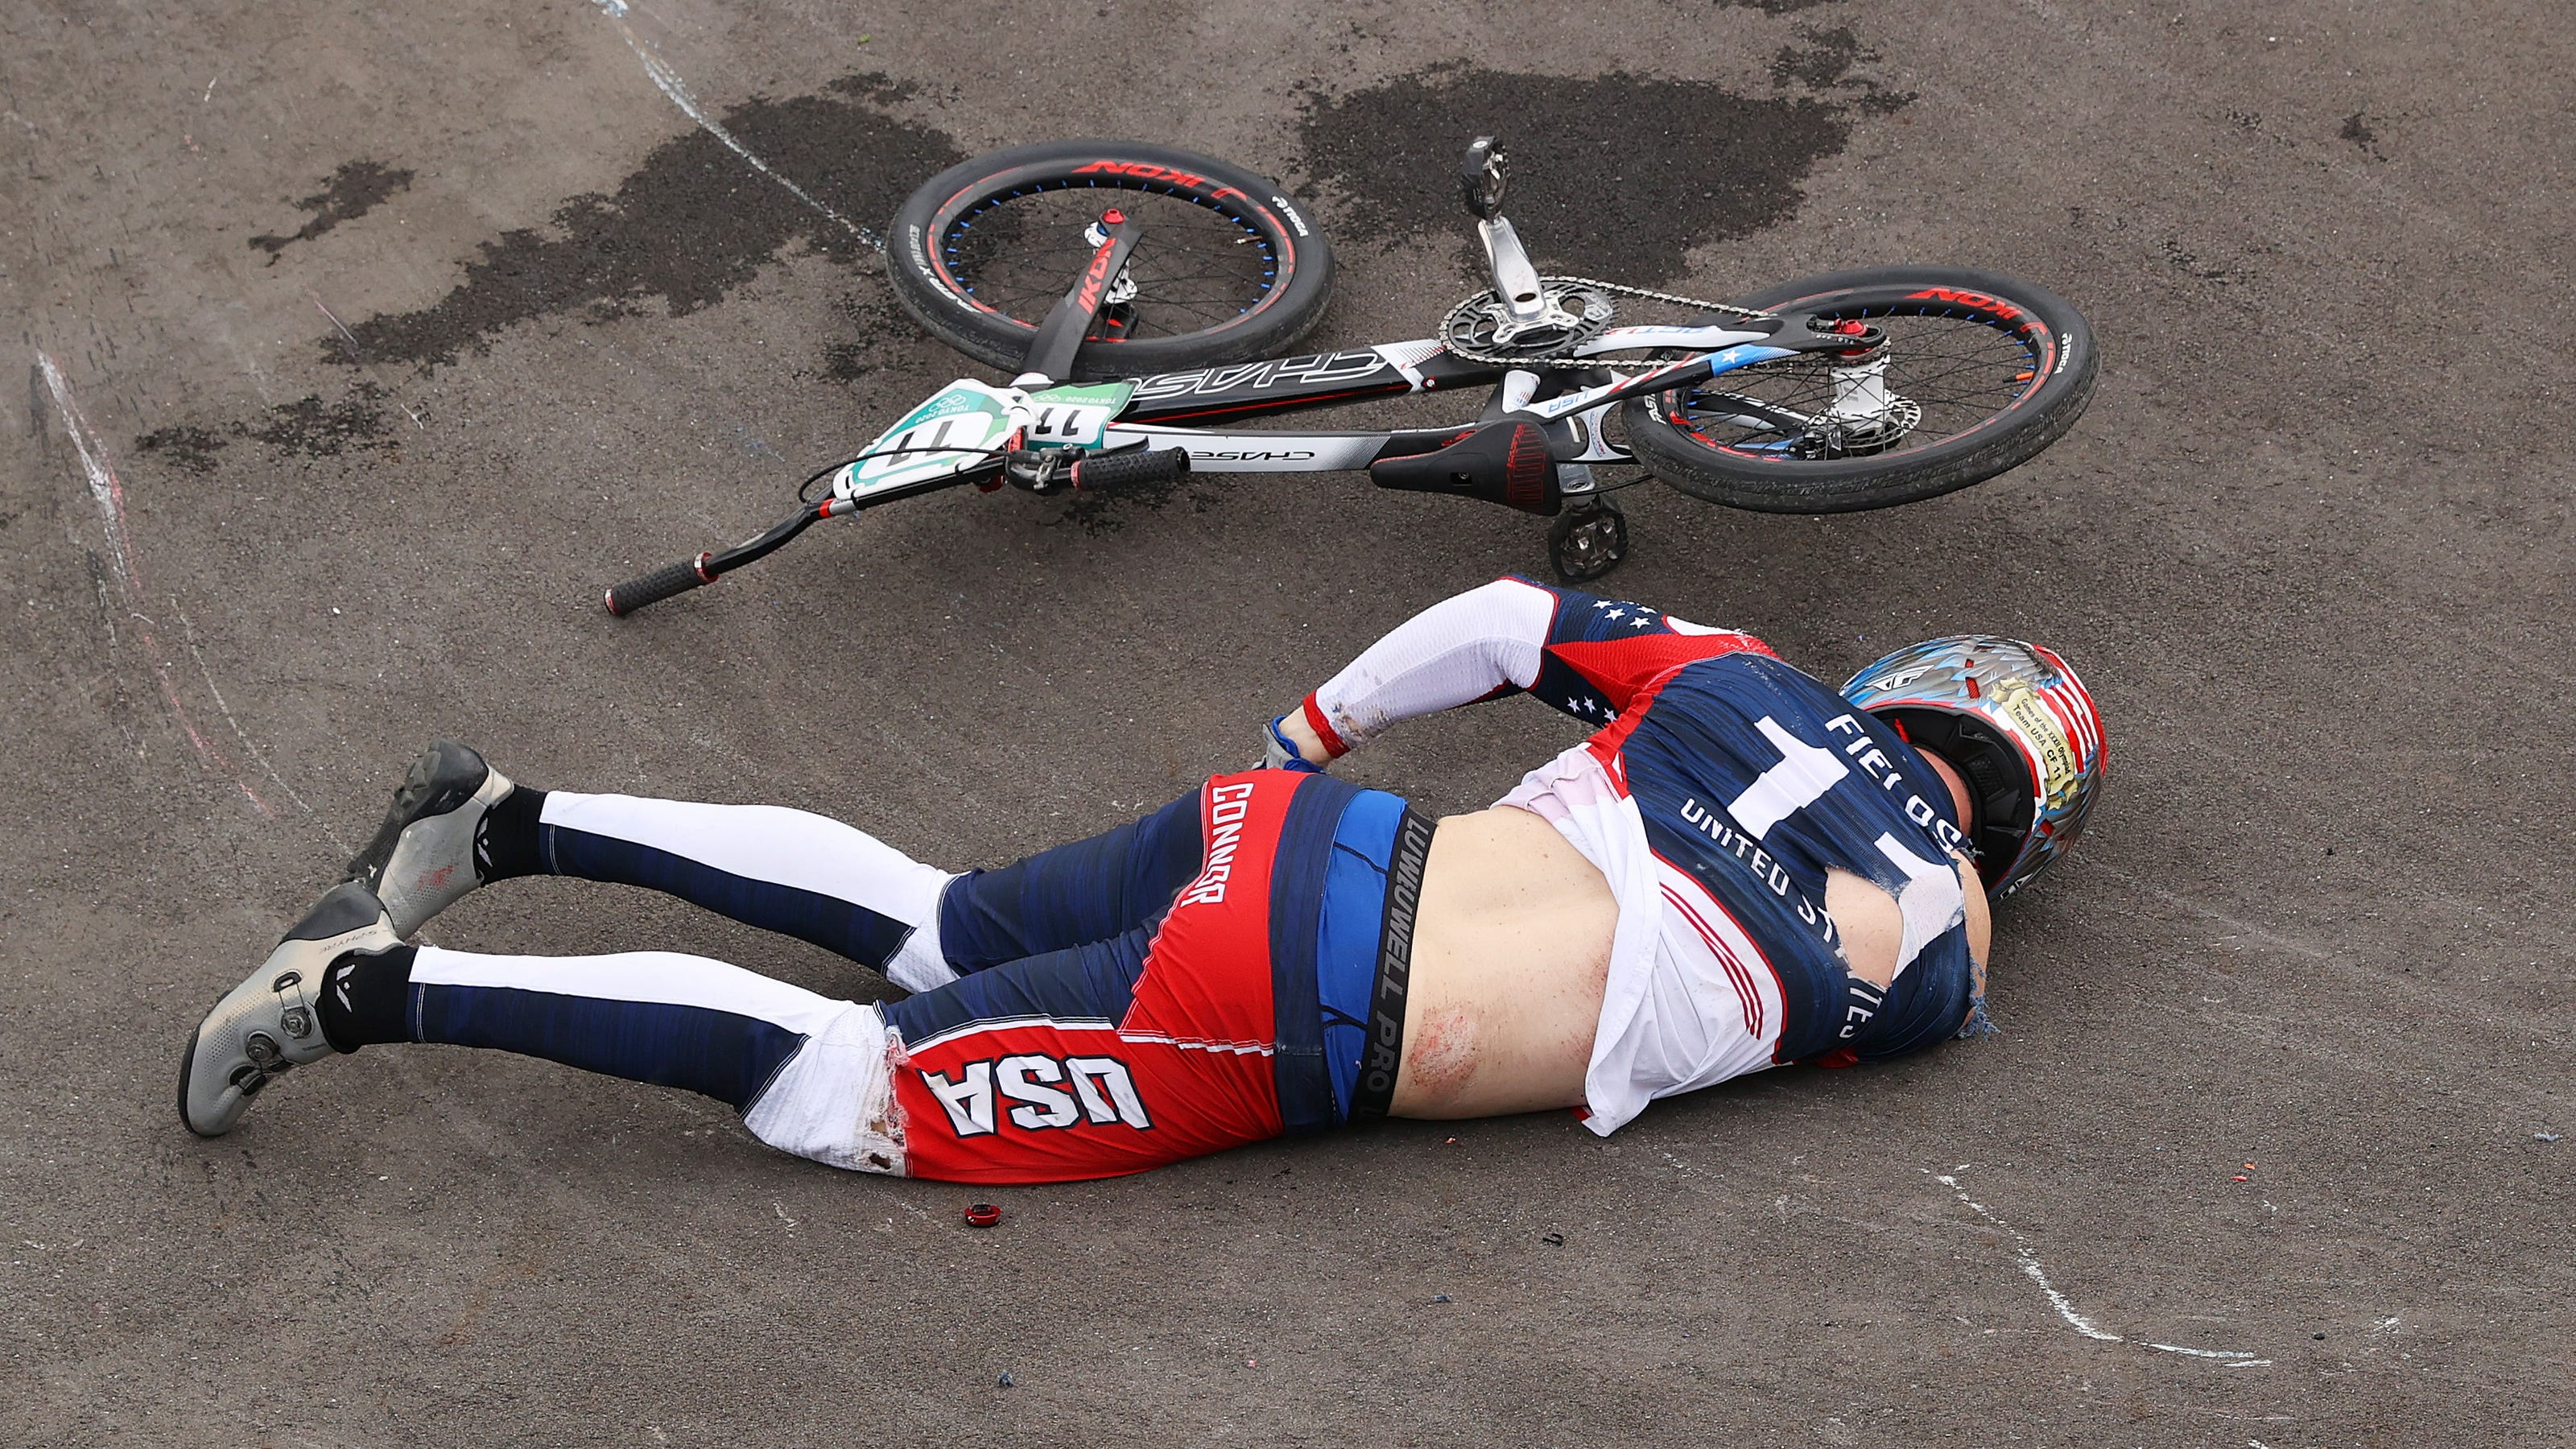 American Connor Fields stretchered off course following crash in BMX race